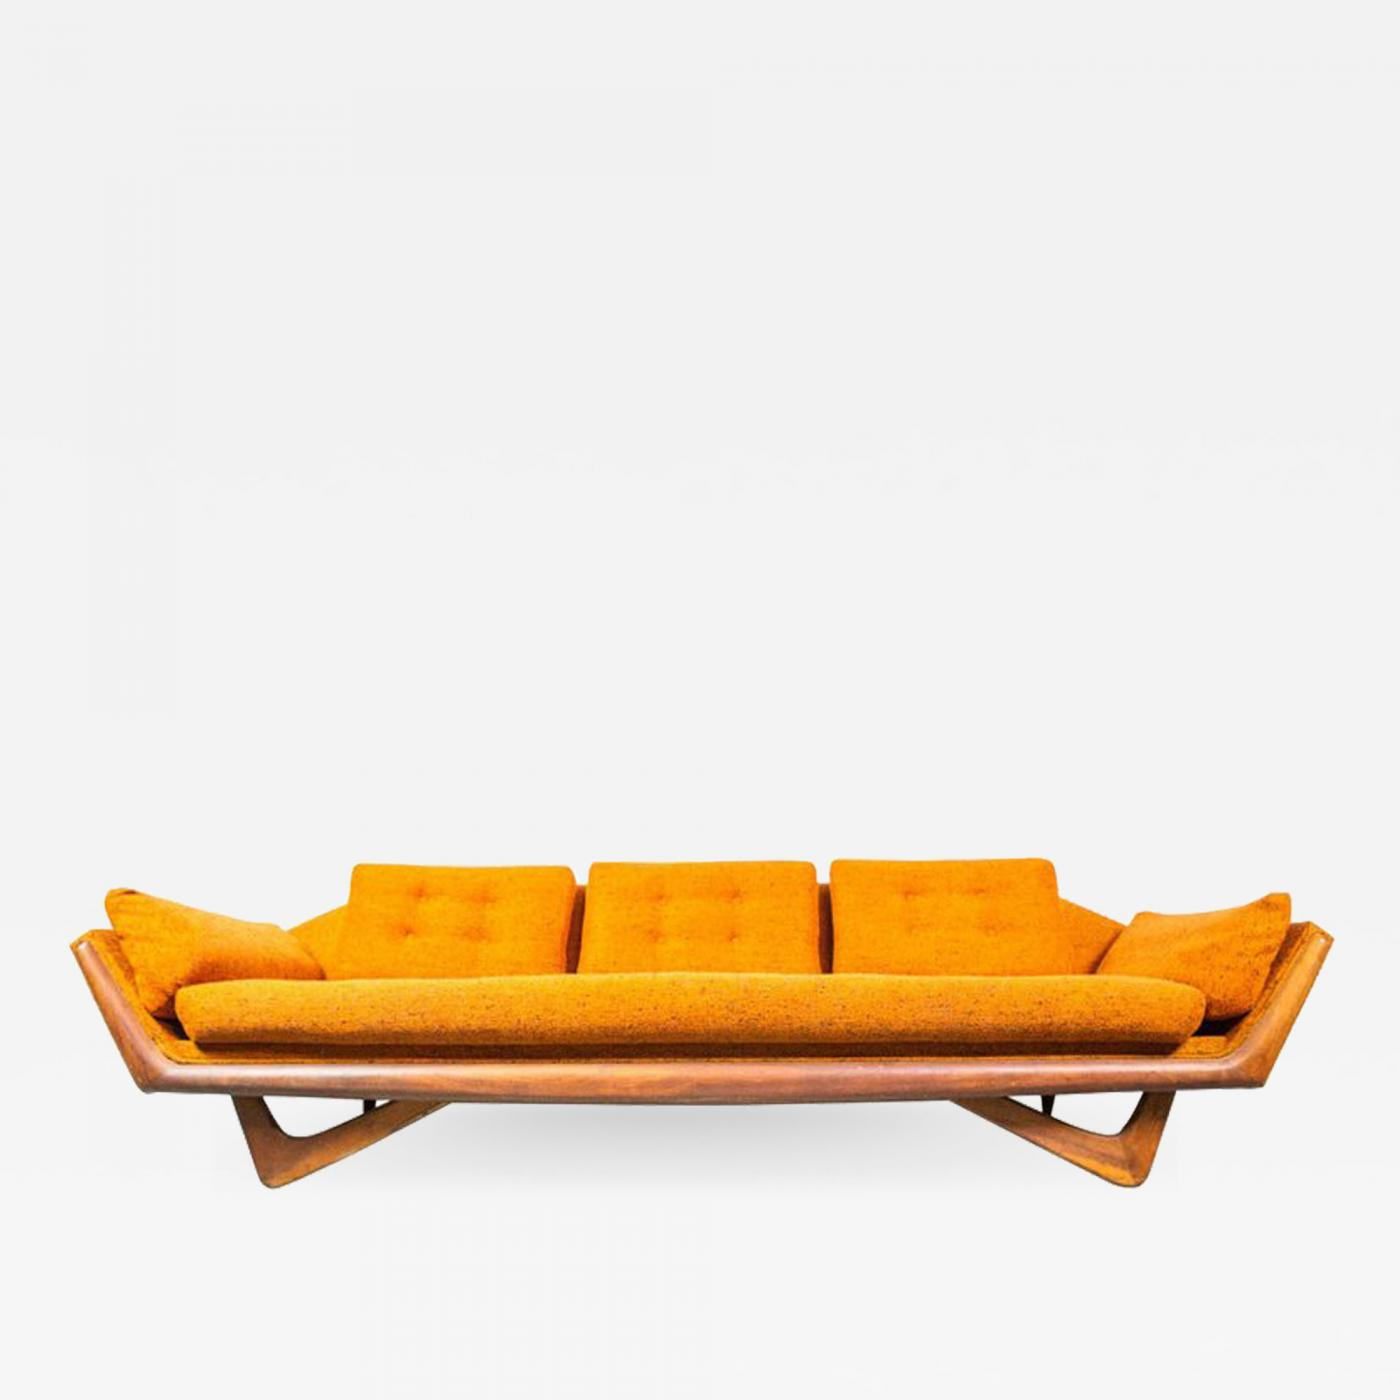 Remarkable Adrian Pearsall Gondola Sofa By Adrian Pearsall For Craft Associates Uwap Interior Chair Design Uwaporg